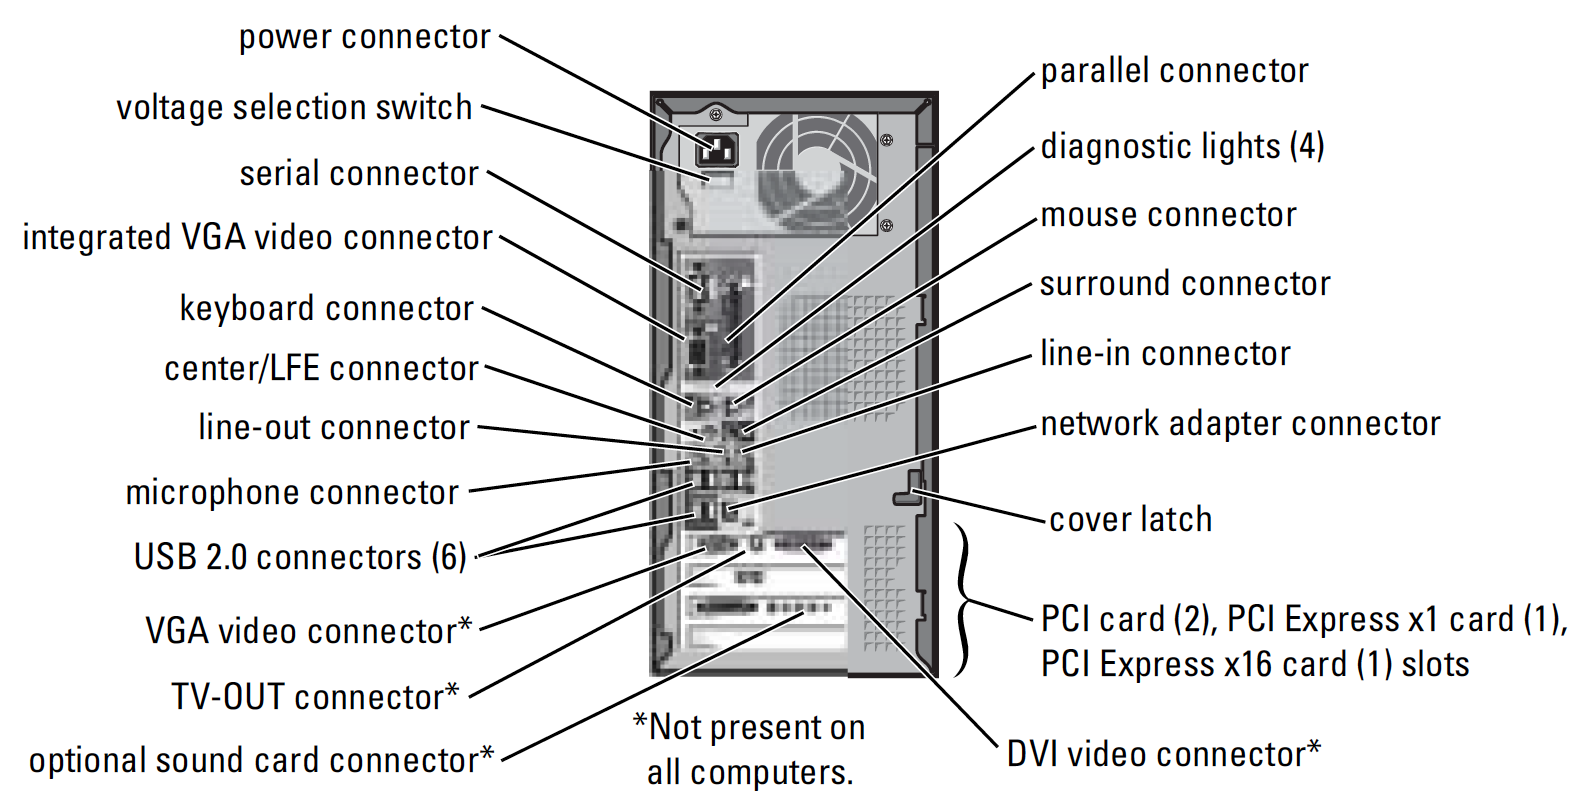 Dell Motherboard Wire Diagram 3000 Wiring Master Blogs Dimension 4700 Xps 410 Manual Desktop